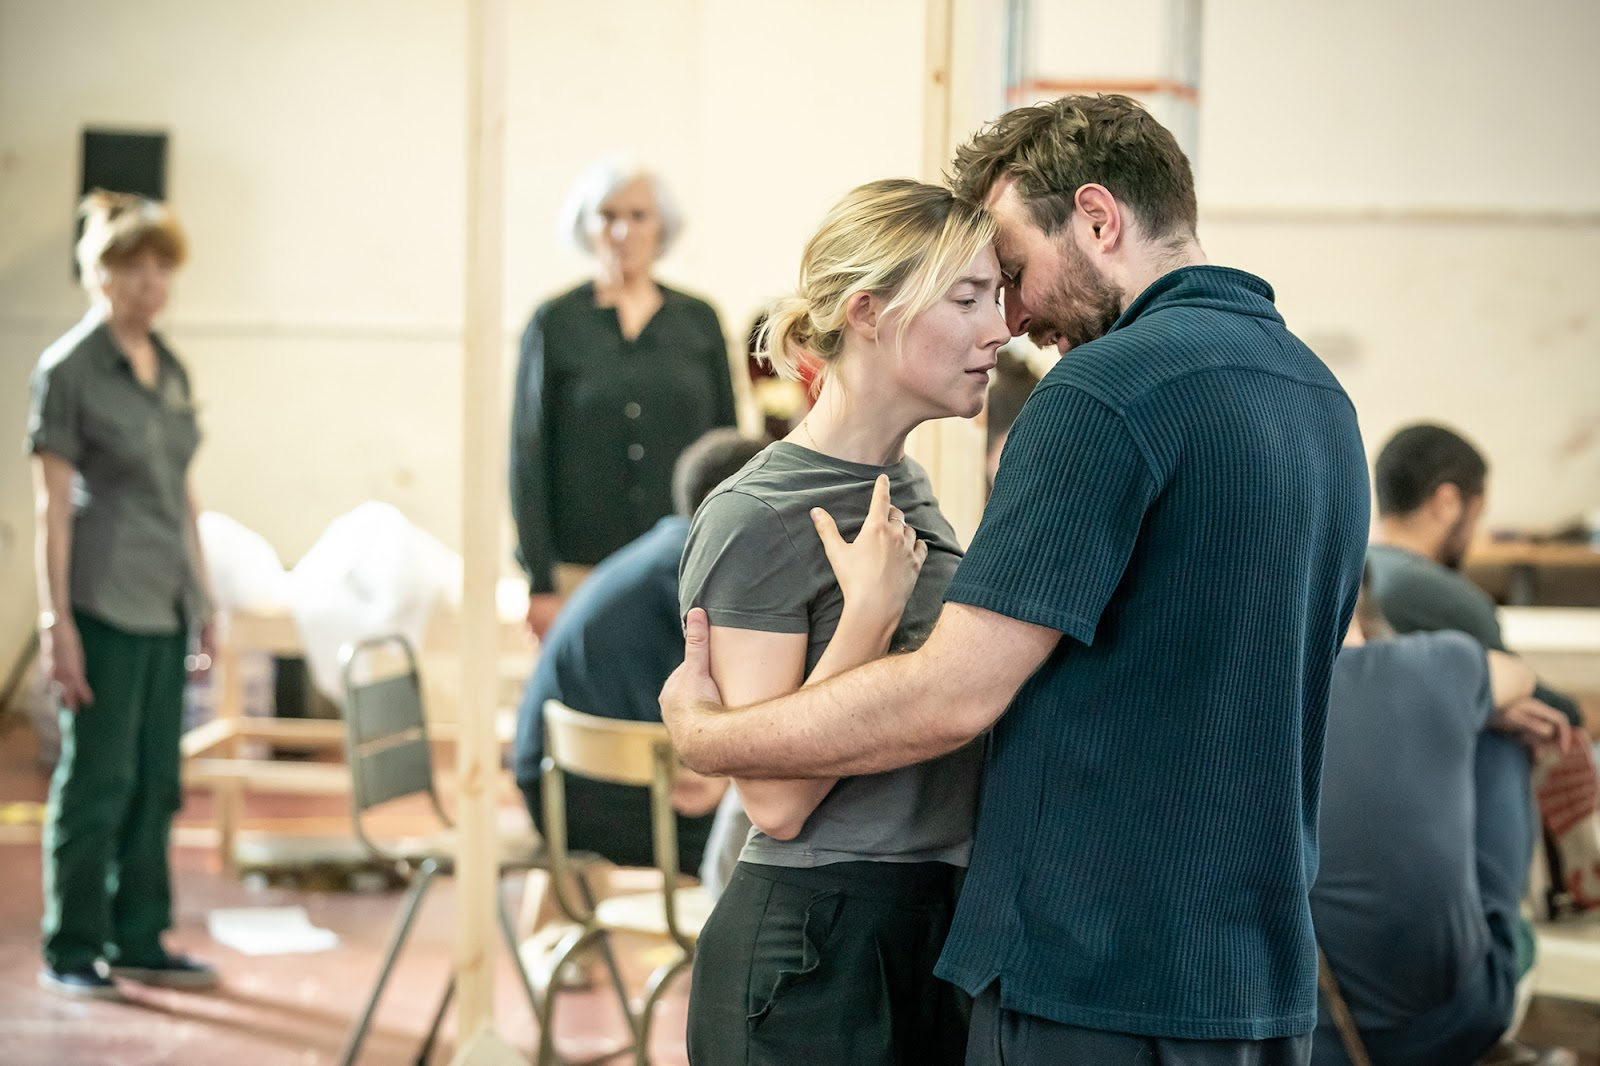 First Look: The Tragedy of Macbeth in rehearsals at the Almeida